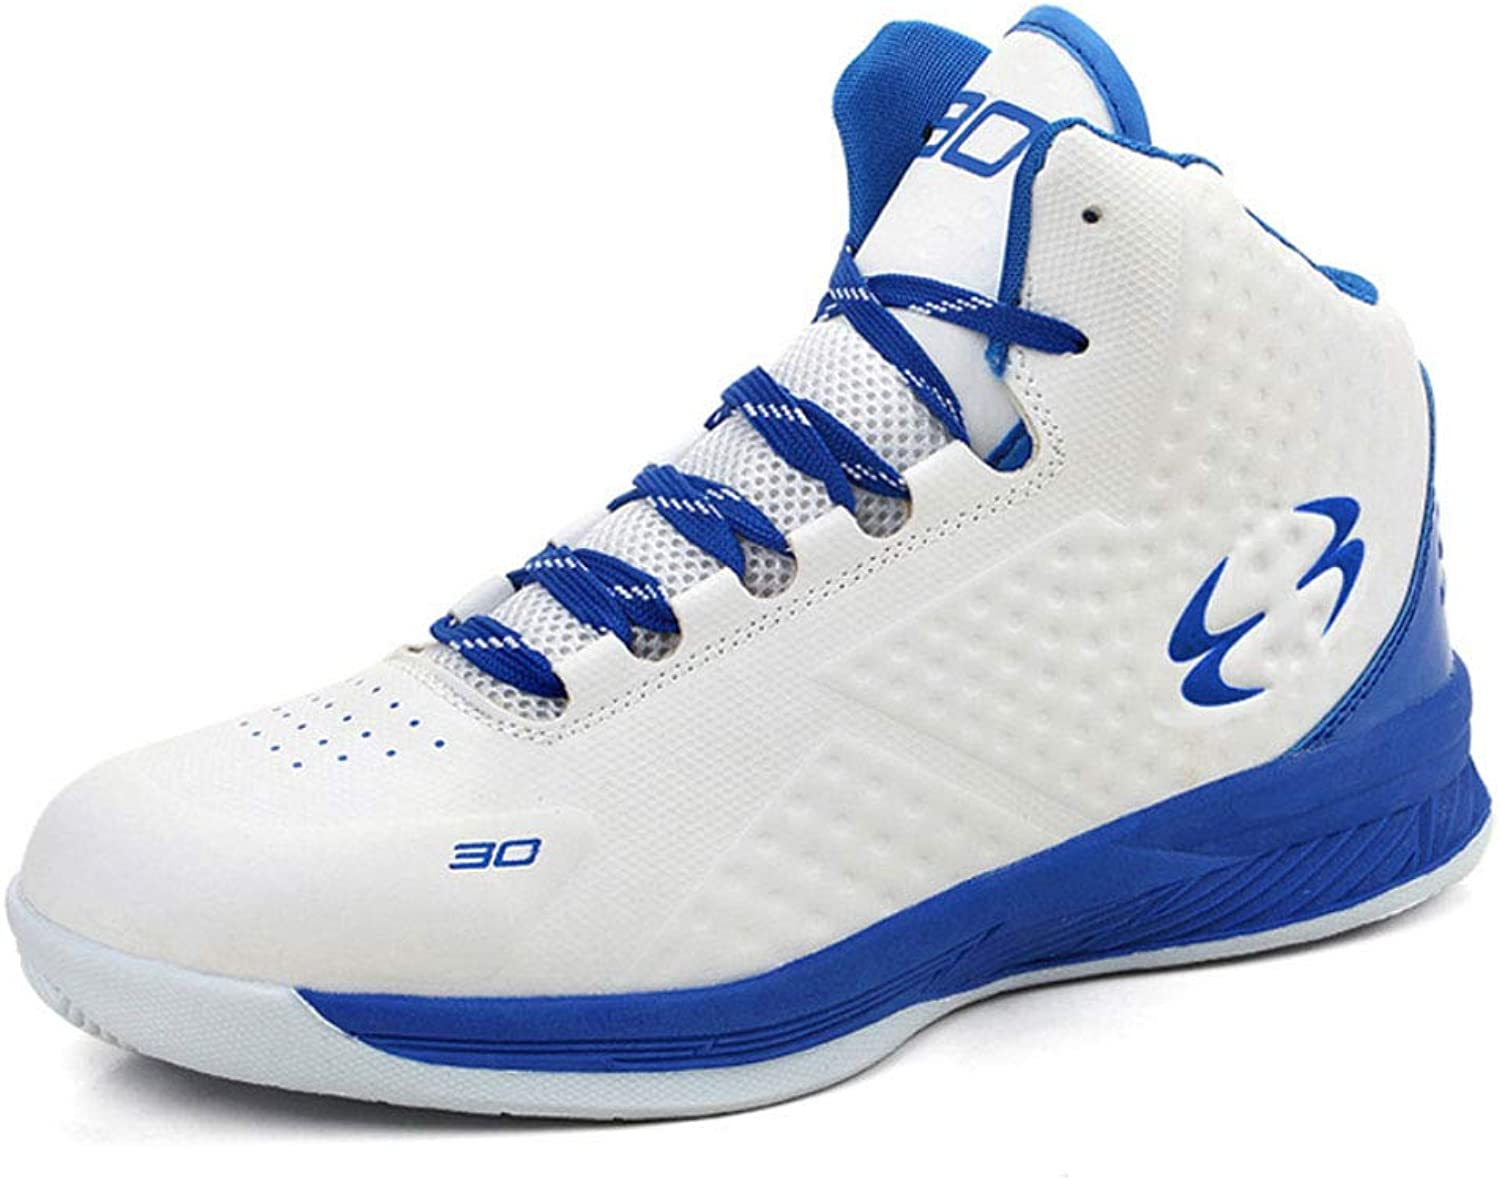 Basketball shoes, high School Men and Women Sports shoes, Lightweight and Wearable Outdoor shoes